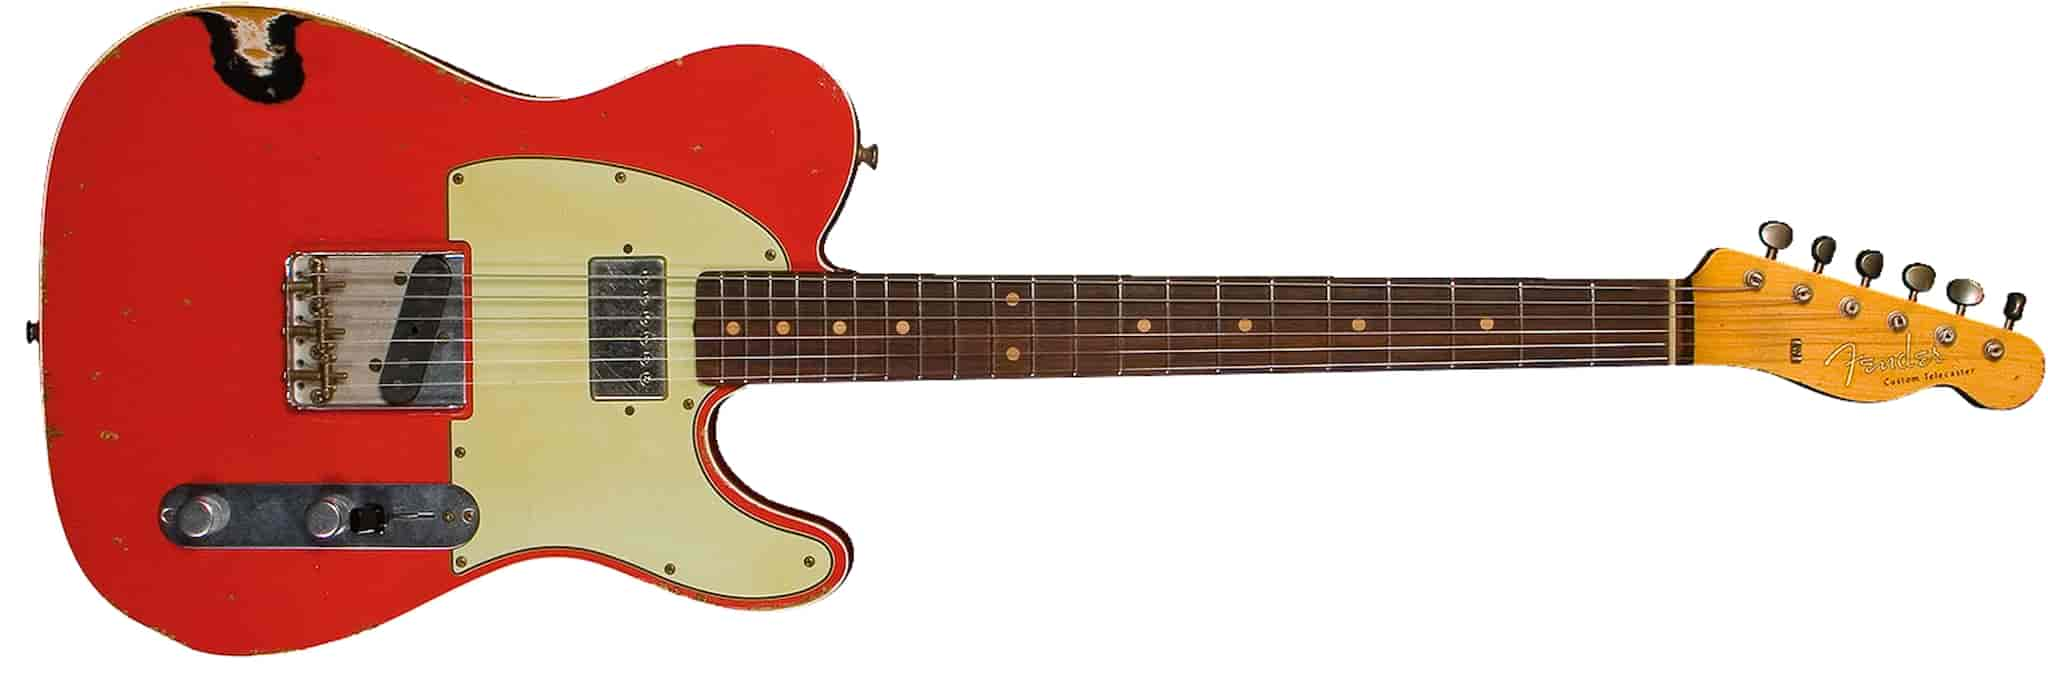 Buy Fender Electric Guitar 9231020060 Features Price Reviews